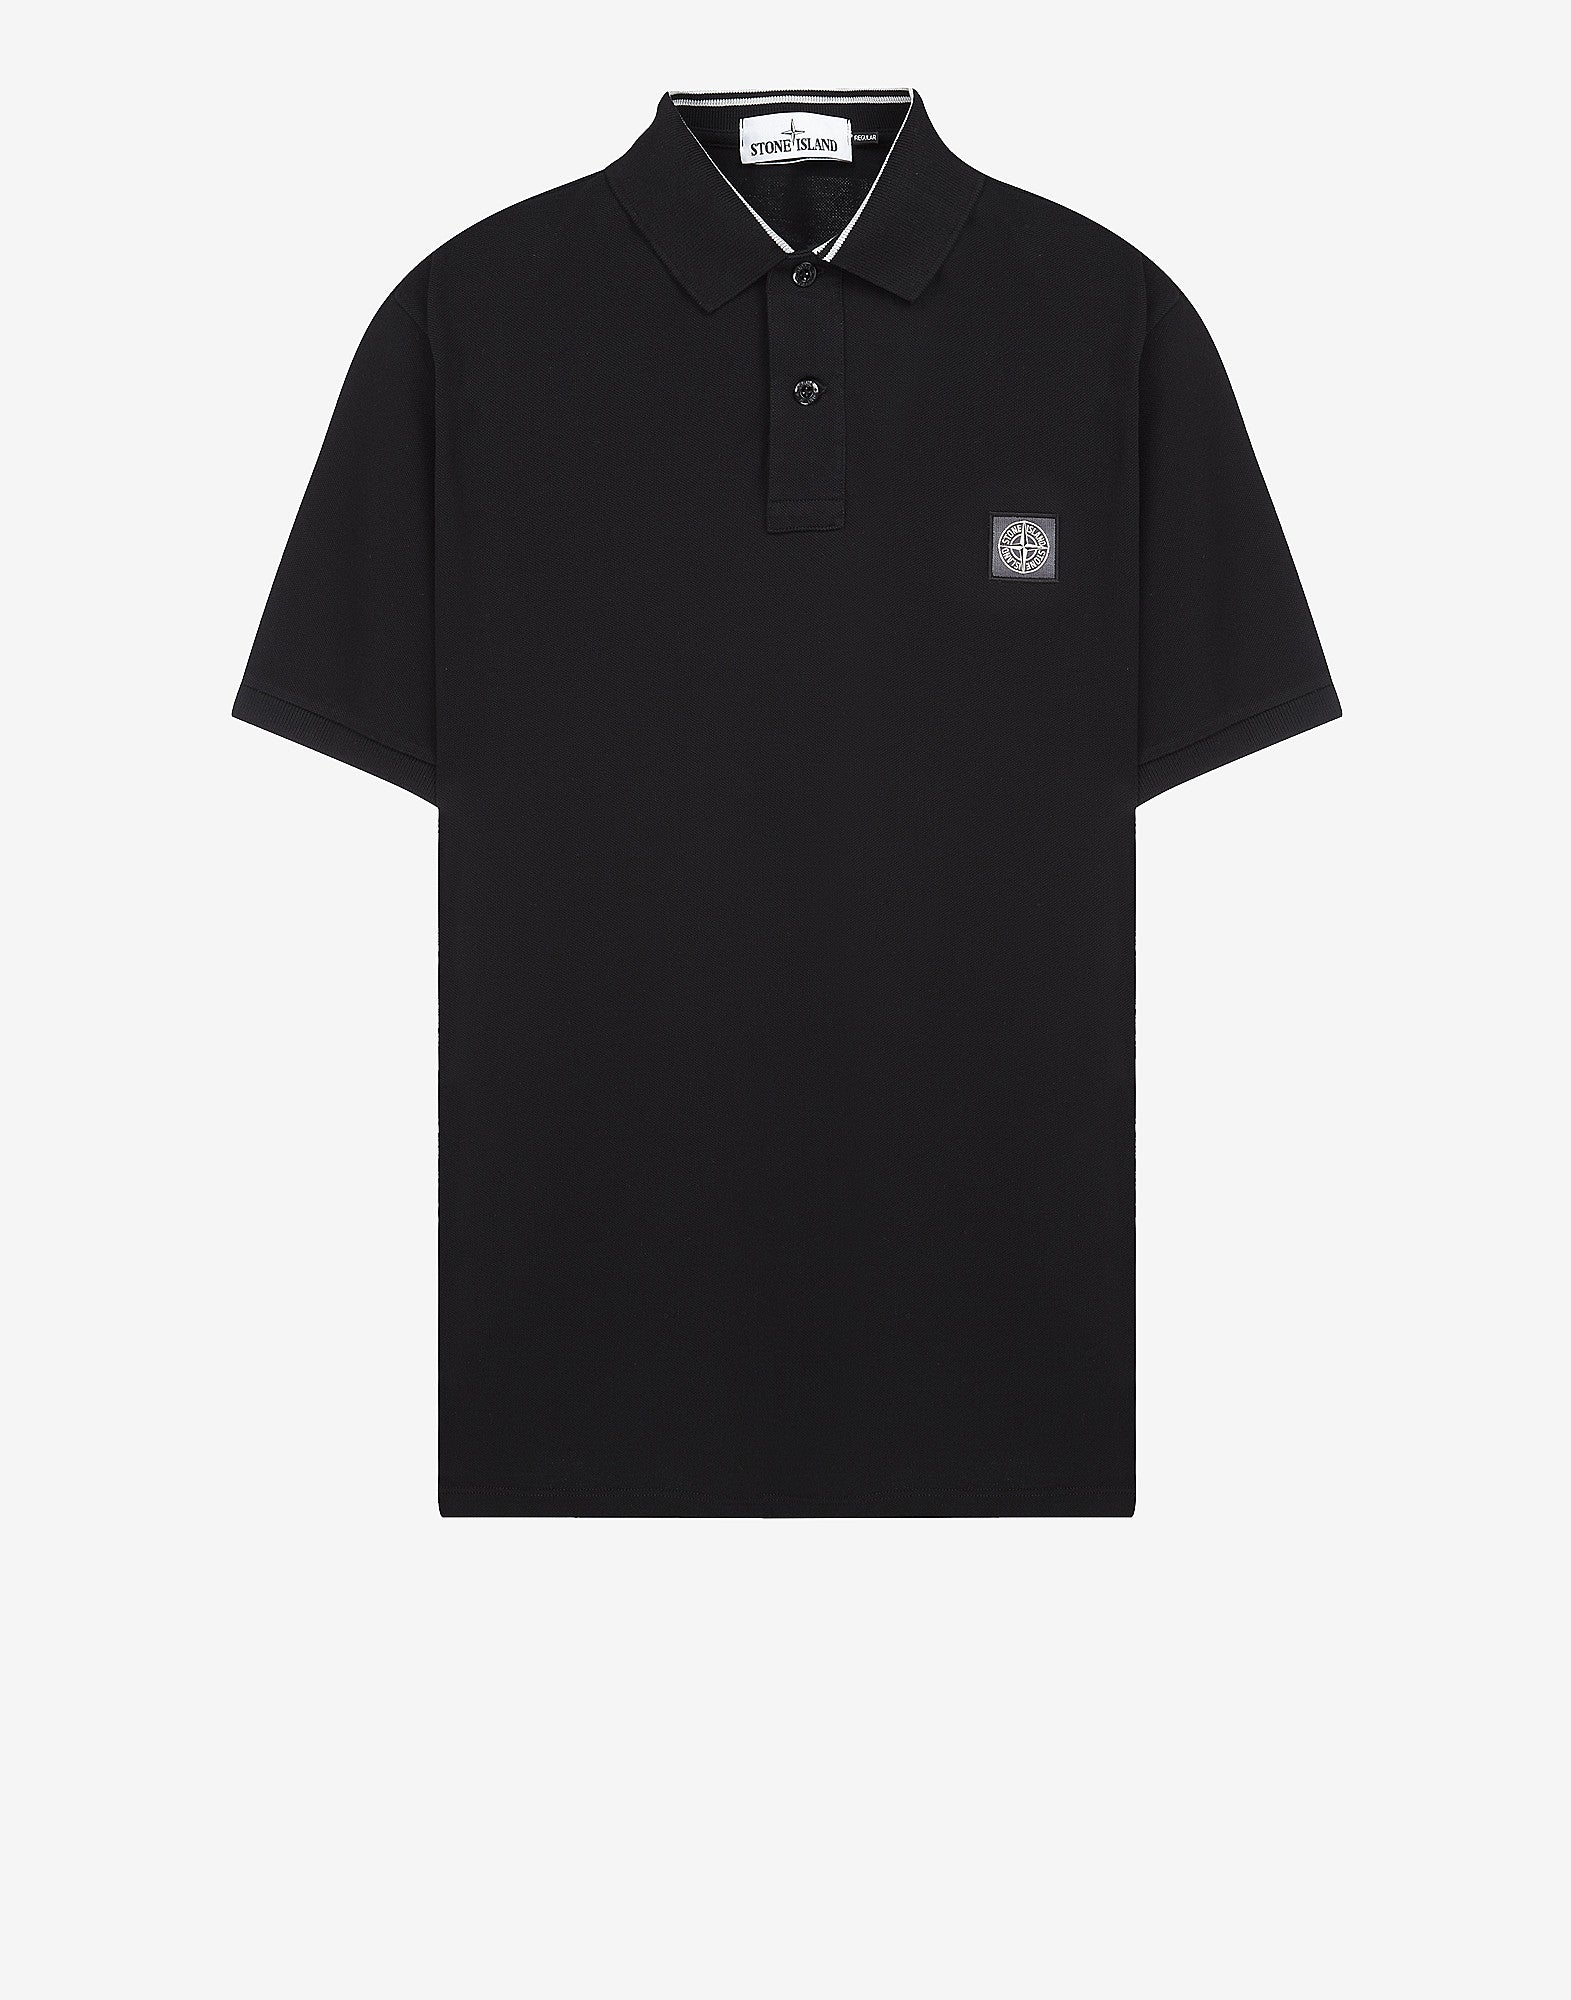 22C15 Cotton Pique Polo Shirt in Black